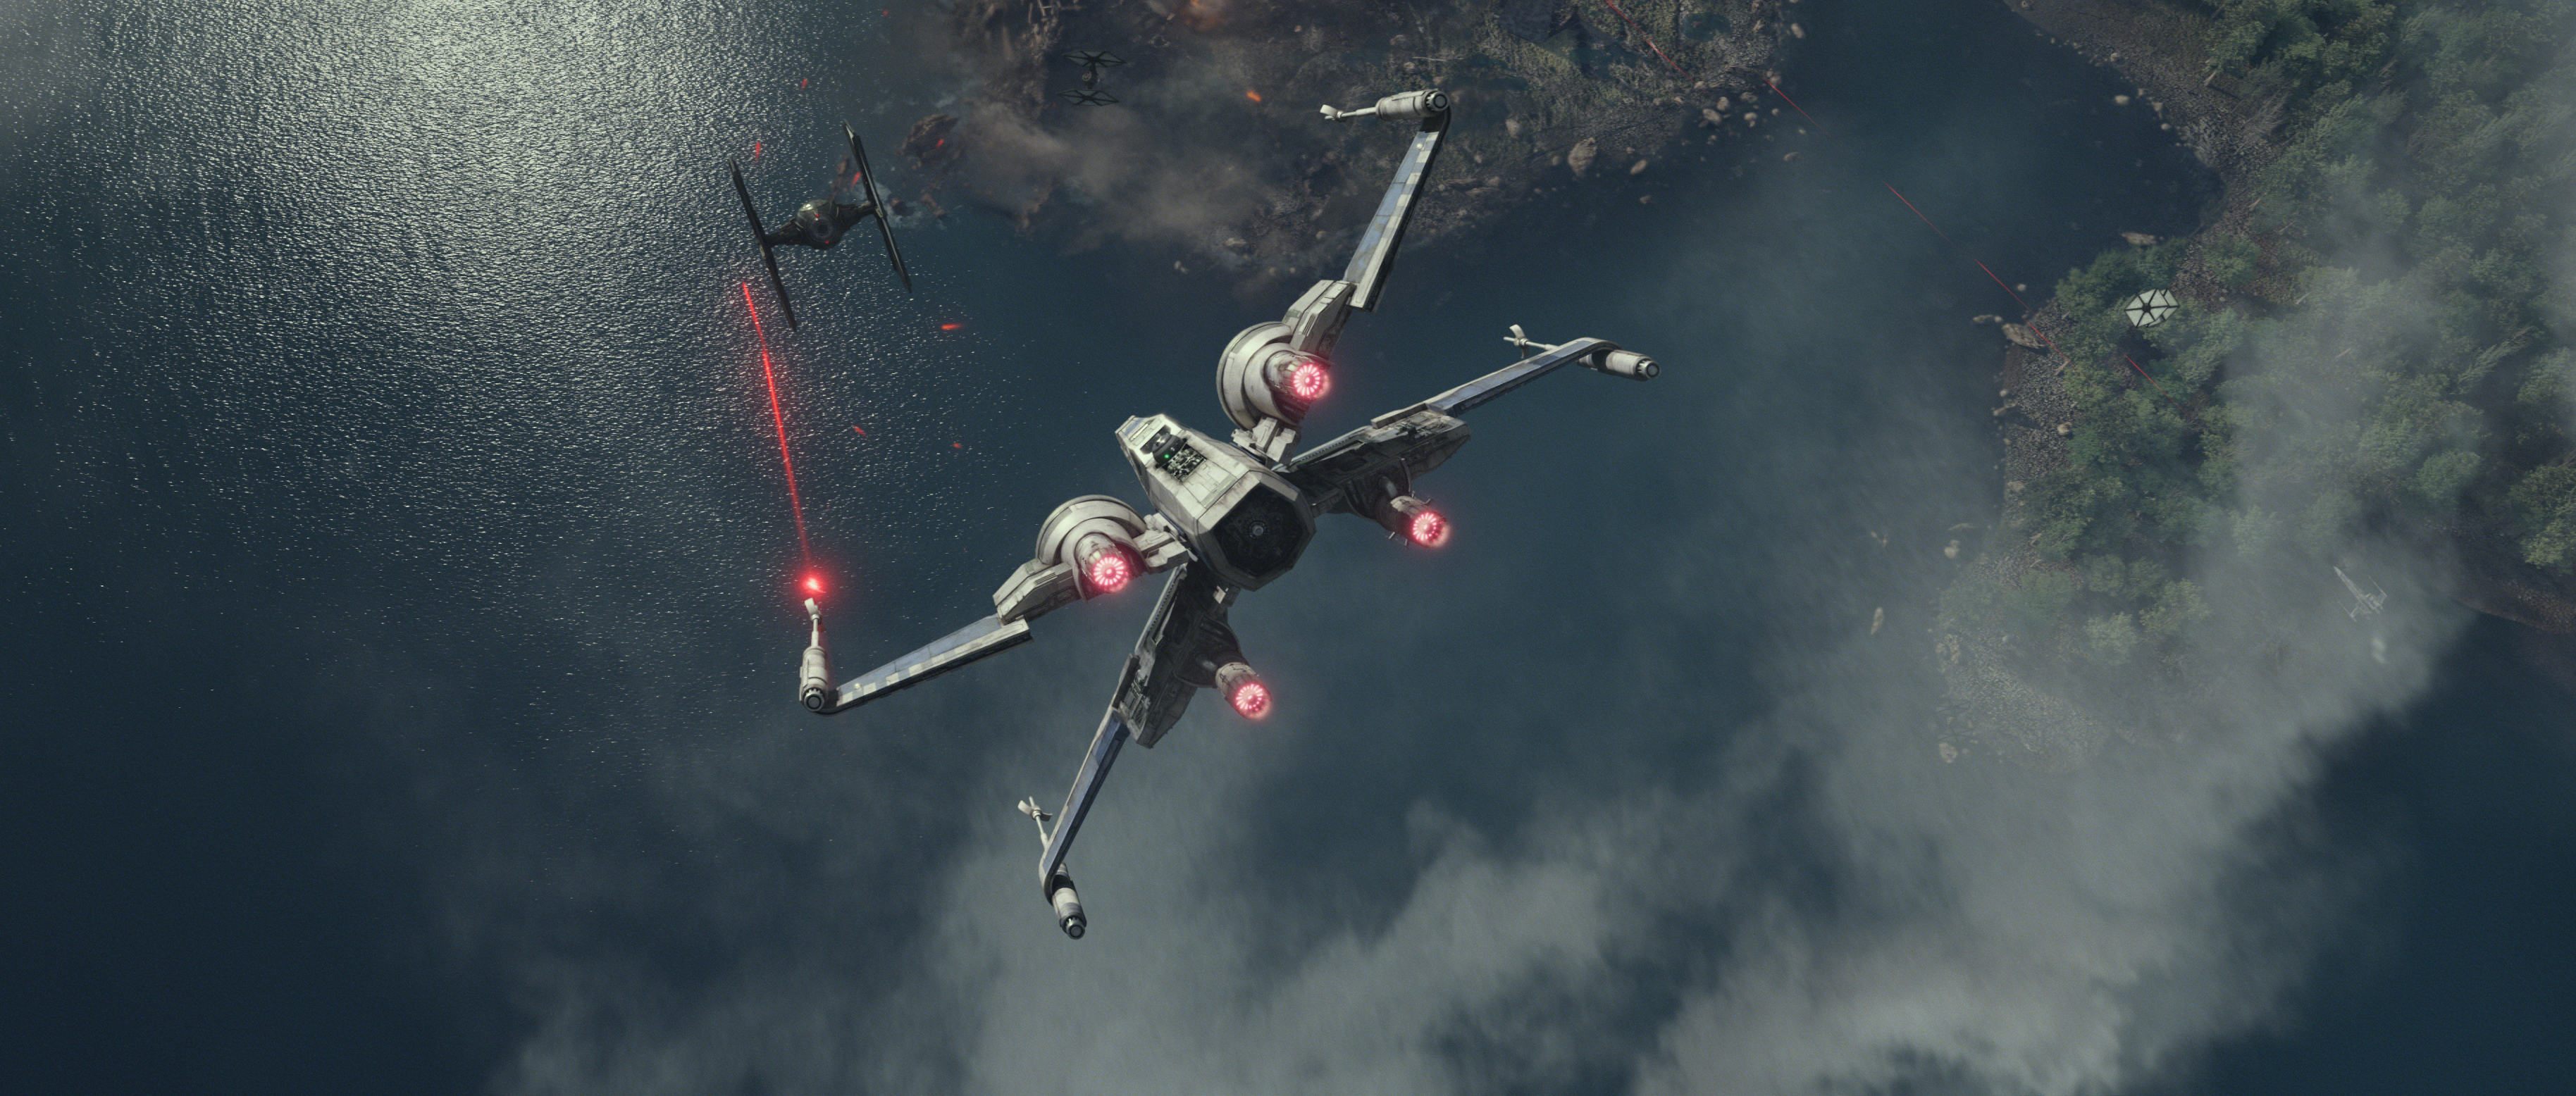 Star Wars 7 Images Are Perfect for Desktop Wallpaper | Collider